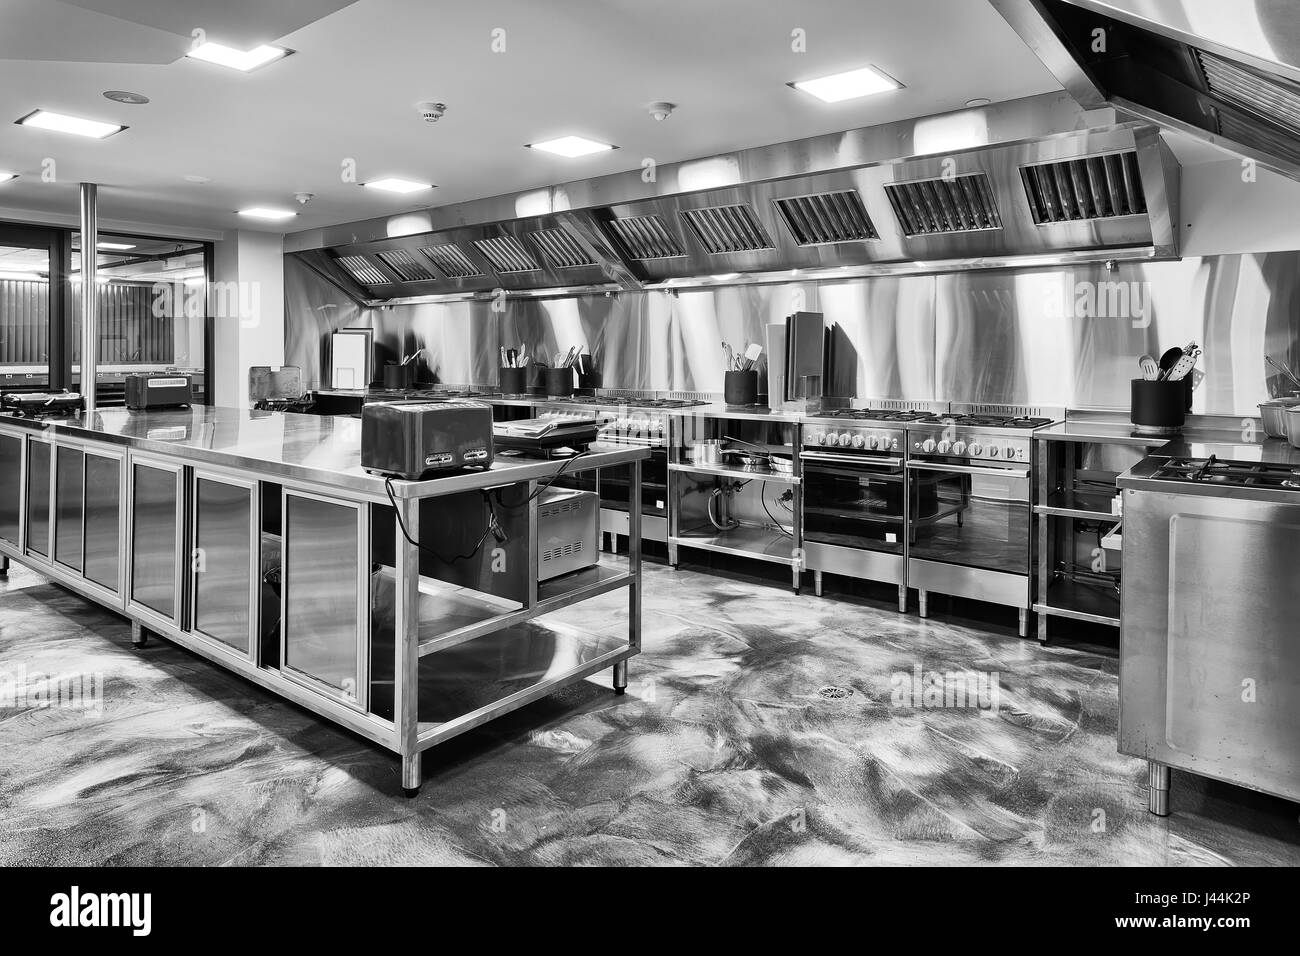 Modern brand new kitchen fully equipped with gas ovens, utensils, cooking table tops and appliences in black-white. - Stock Image